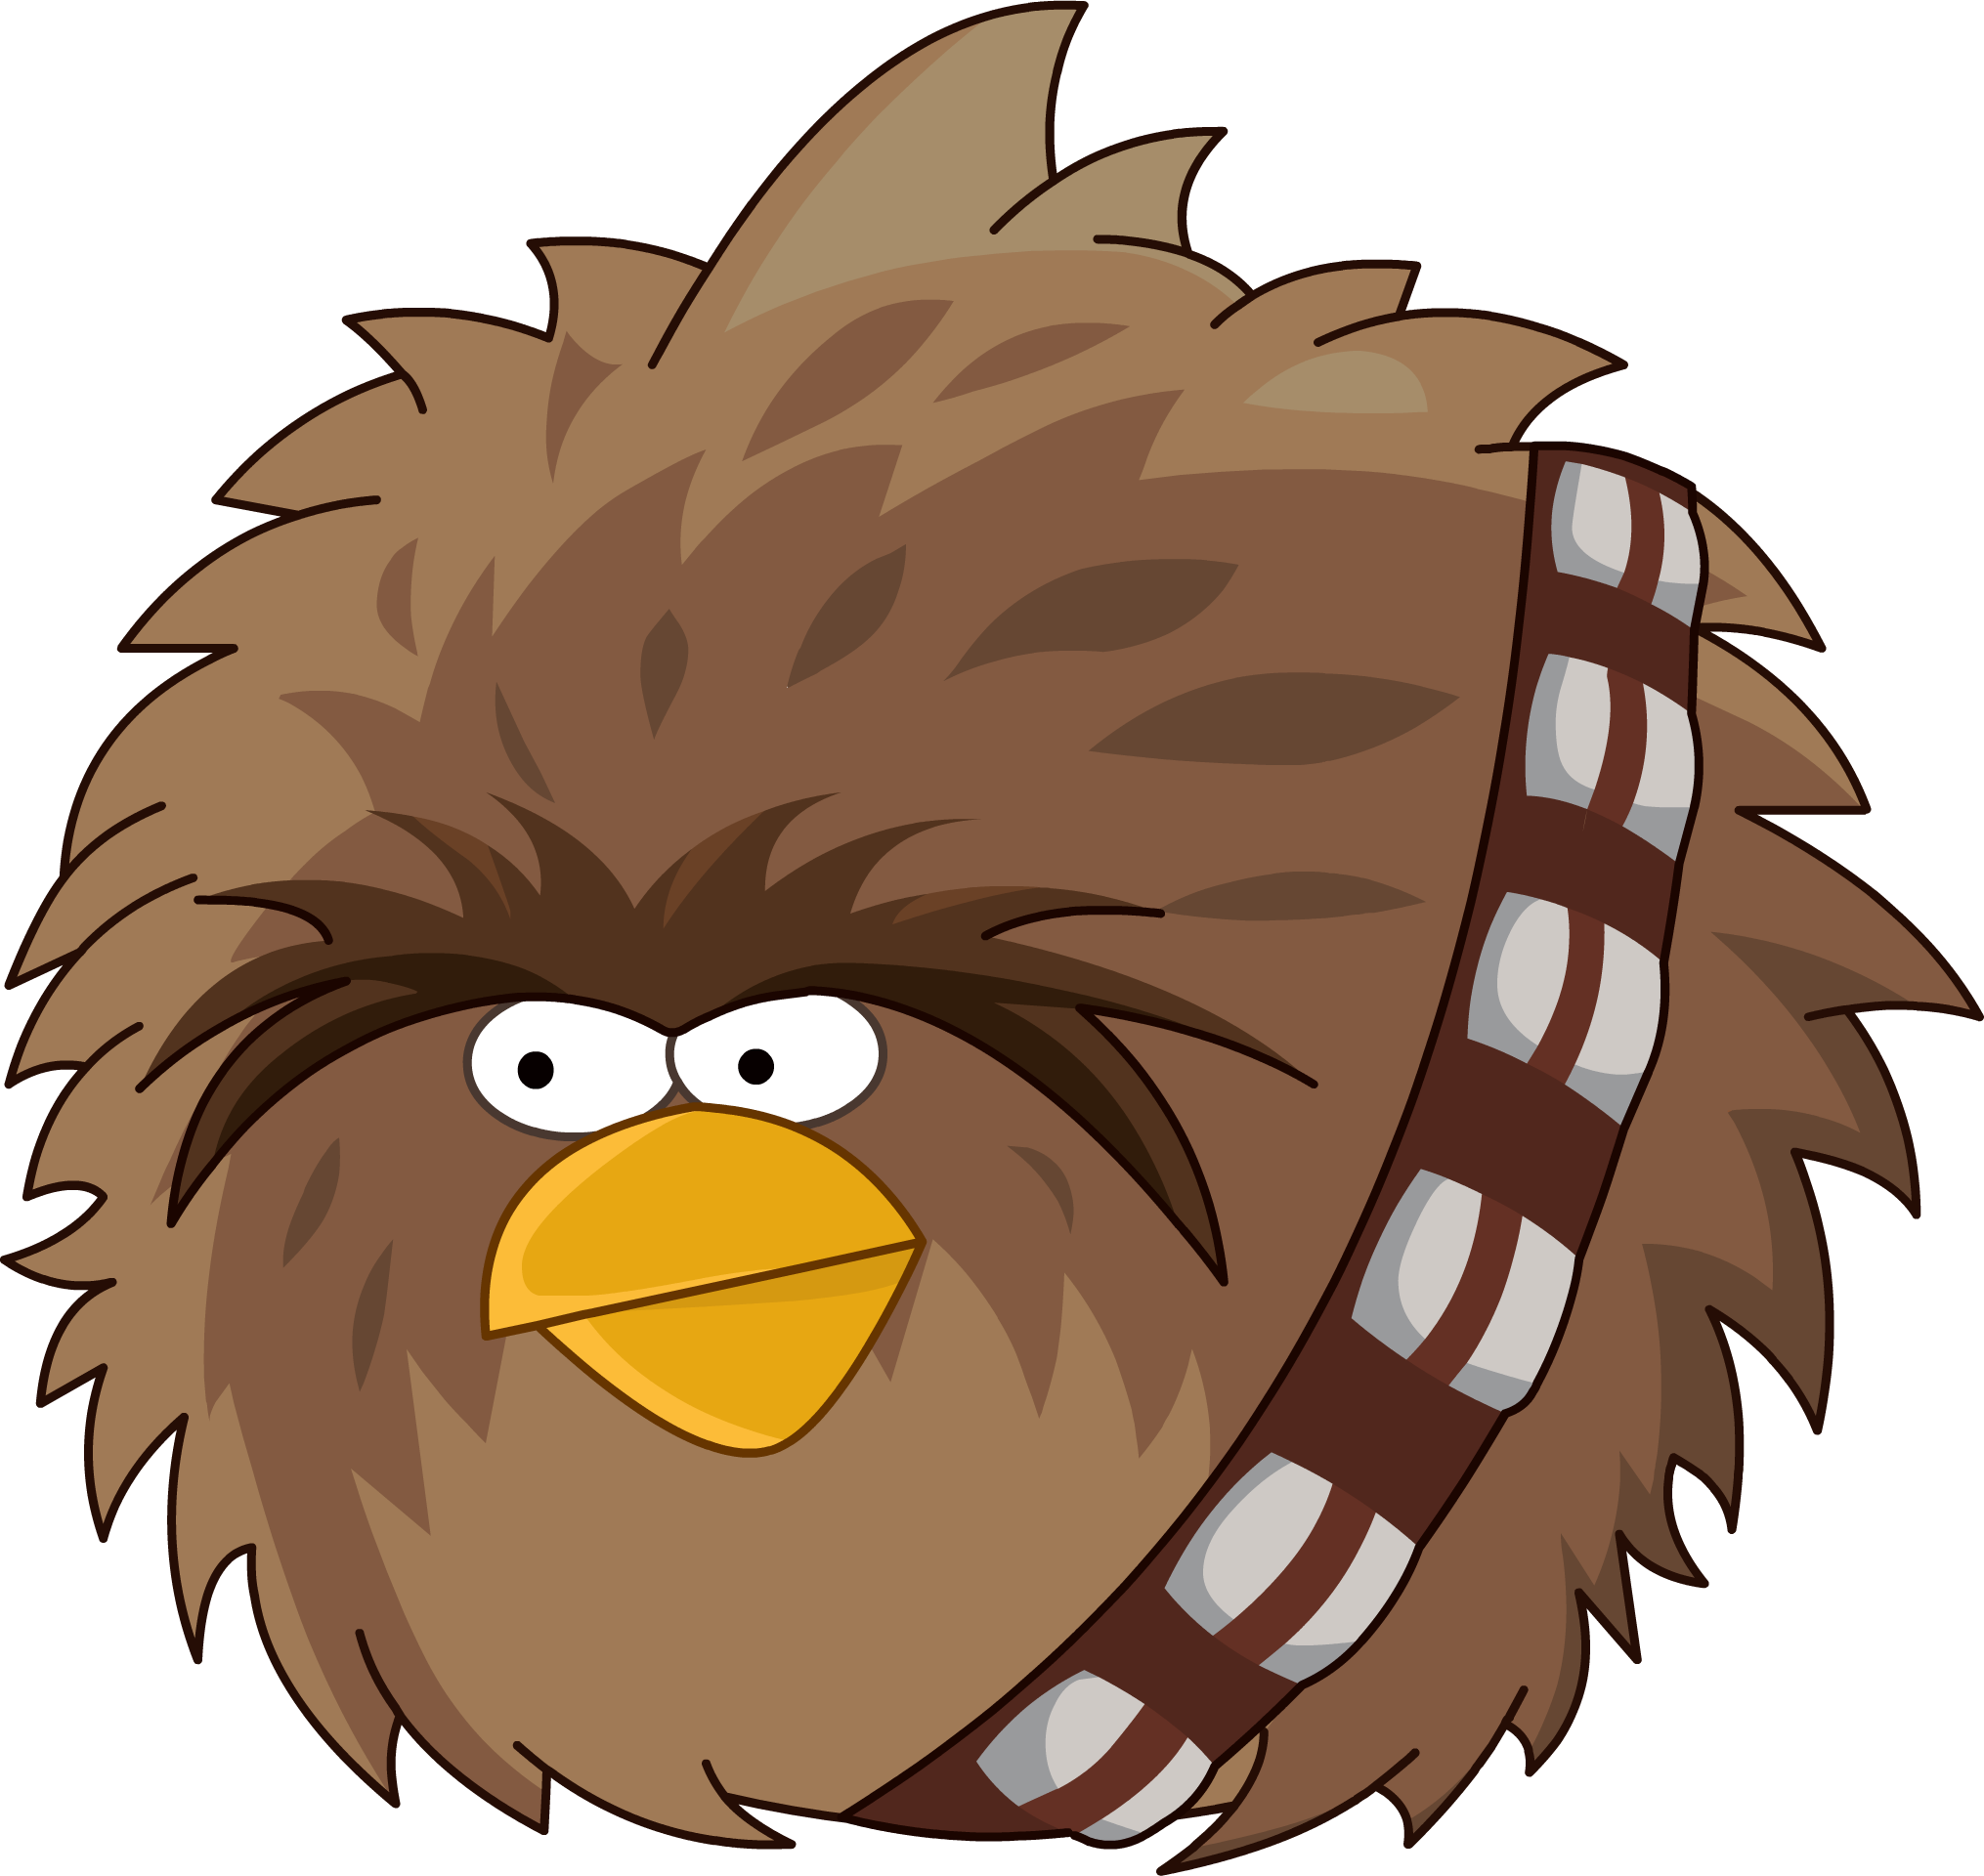 Free star wars chewie clipart png transparent Chewbacca (Terrence the Big Brother Bird) | Heroes Wiki | FANDOM ... png transparent